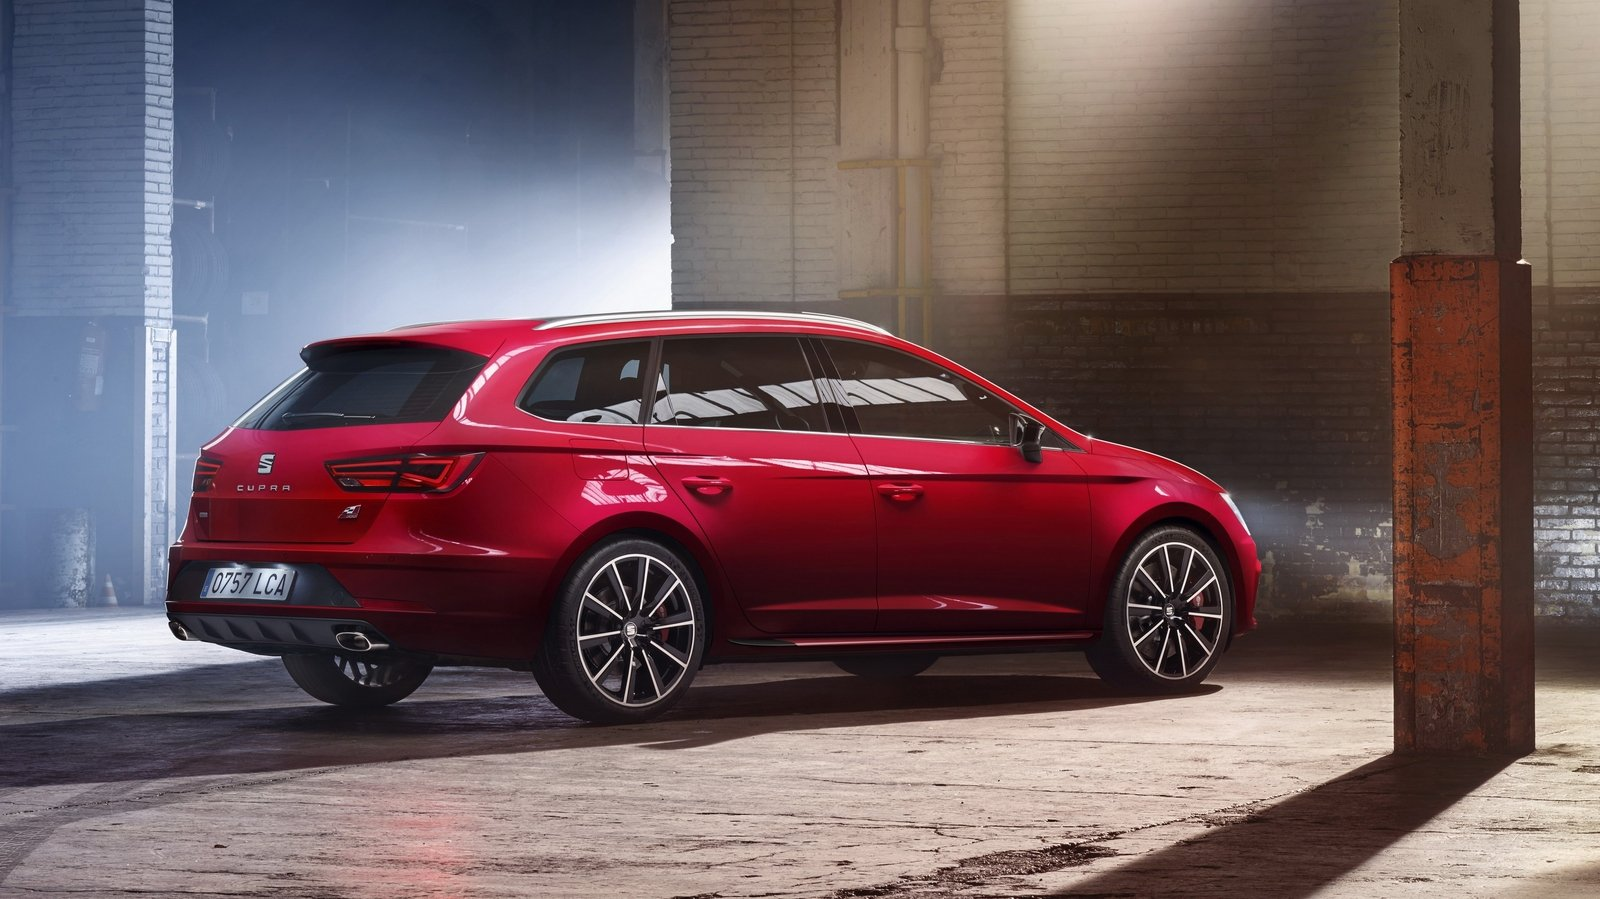 2017 seat leon cupra 300 picture 699319 car review top speed. Black Bedroom Furniture Sets. Home Design Ideas